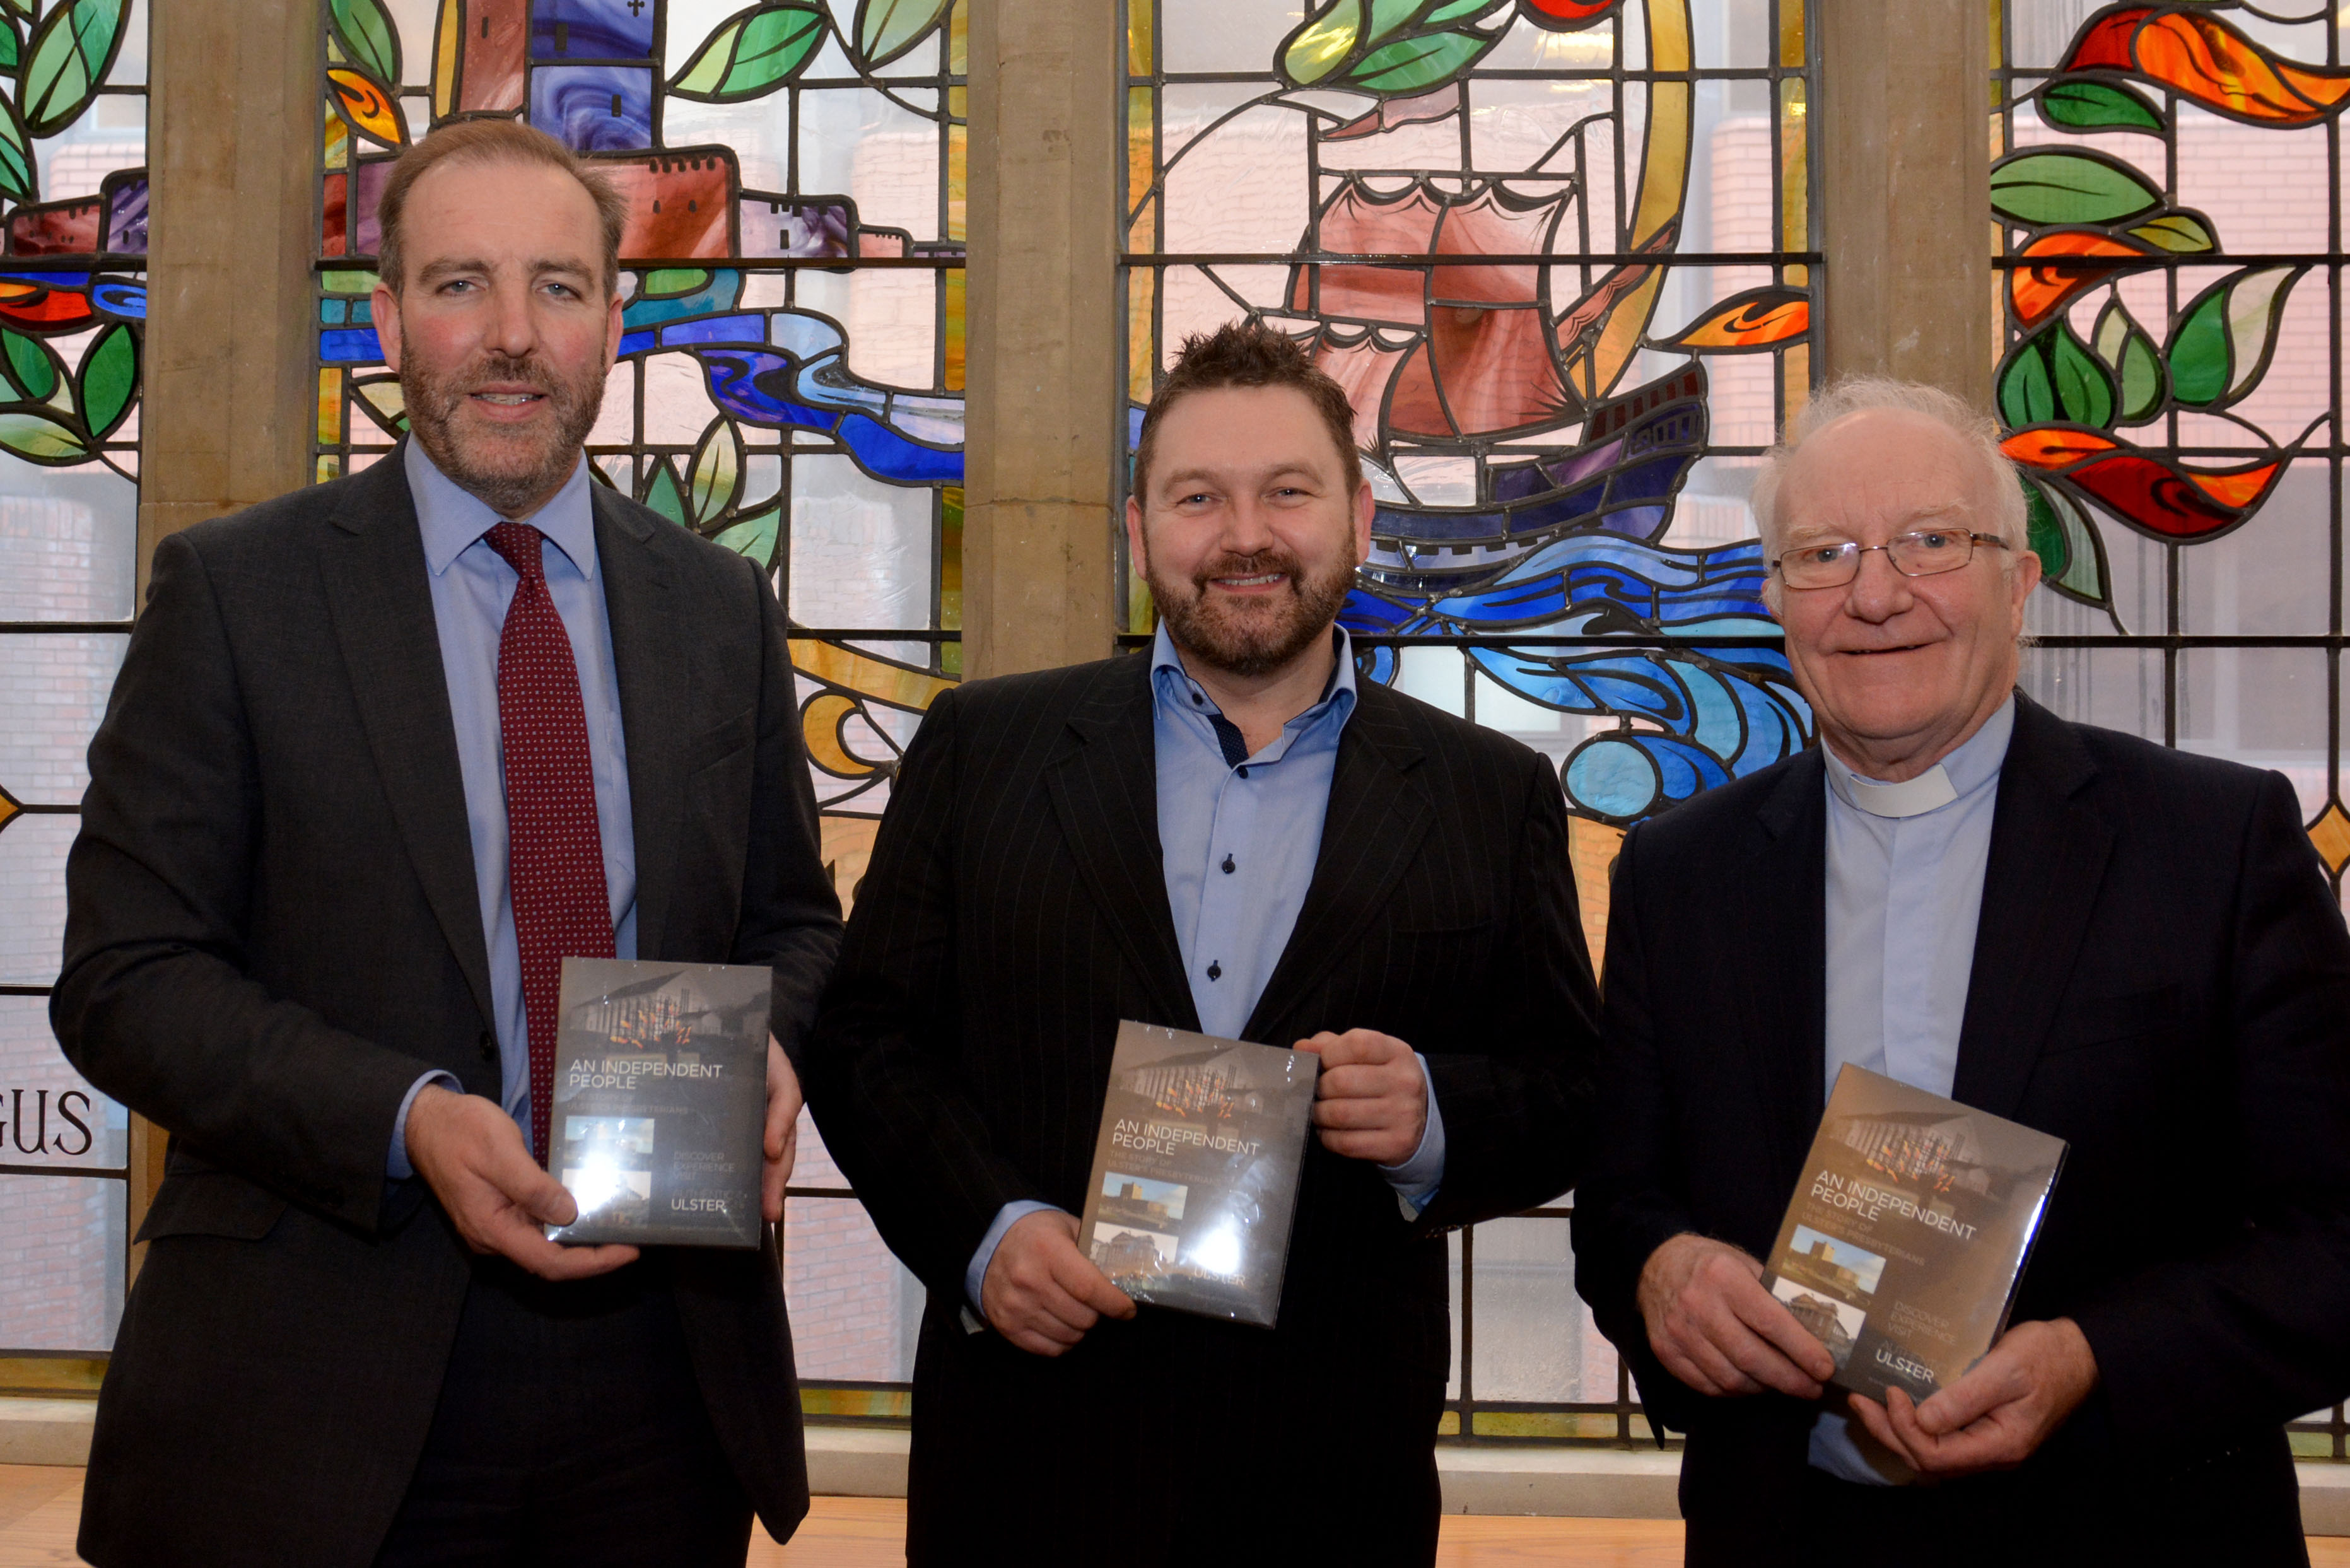 New tourist project charts history of Ulster's Presbyterians